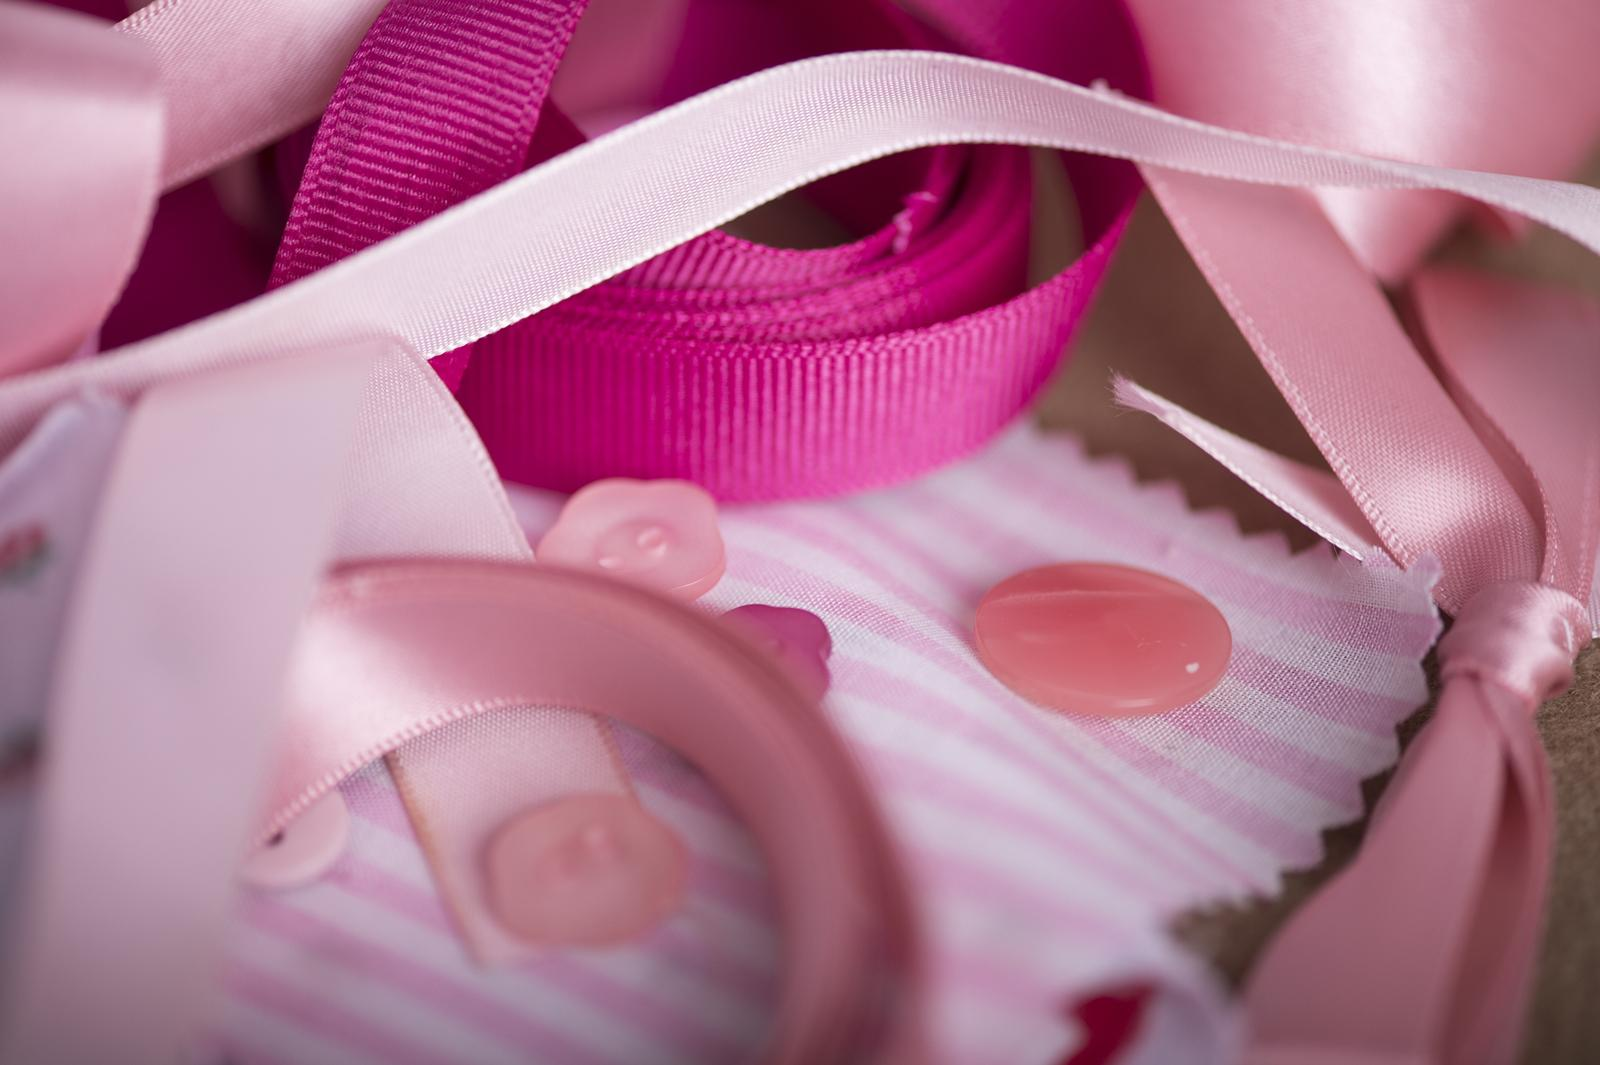 Pink ribbons and buttons.